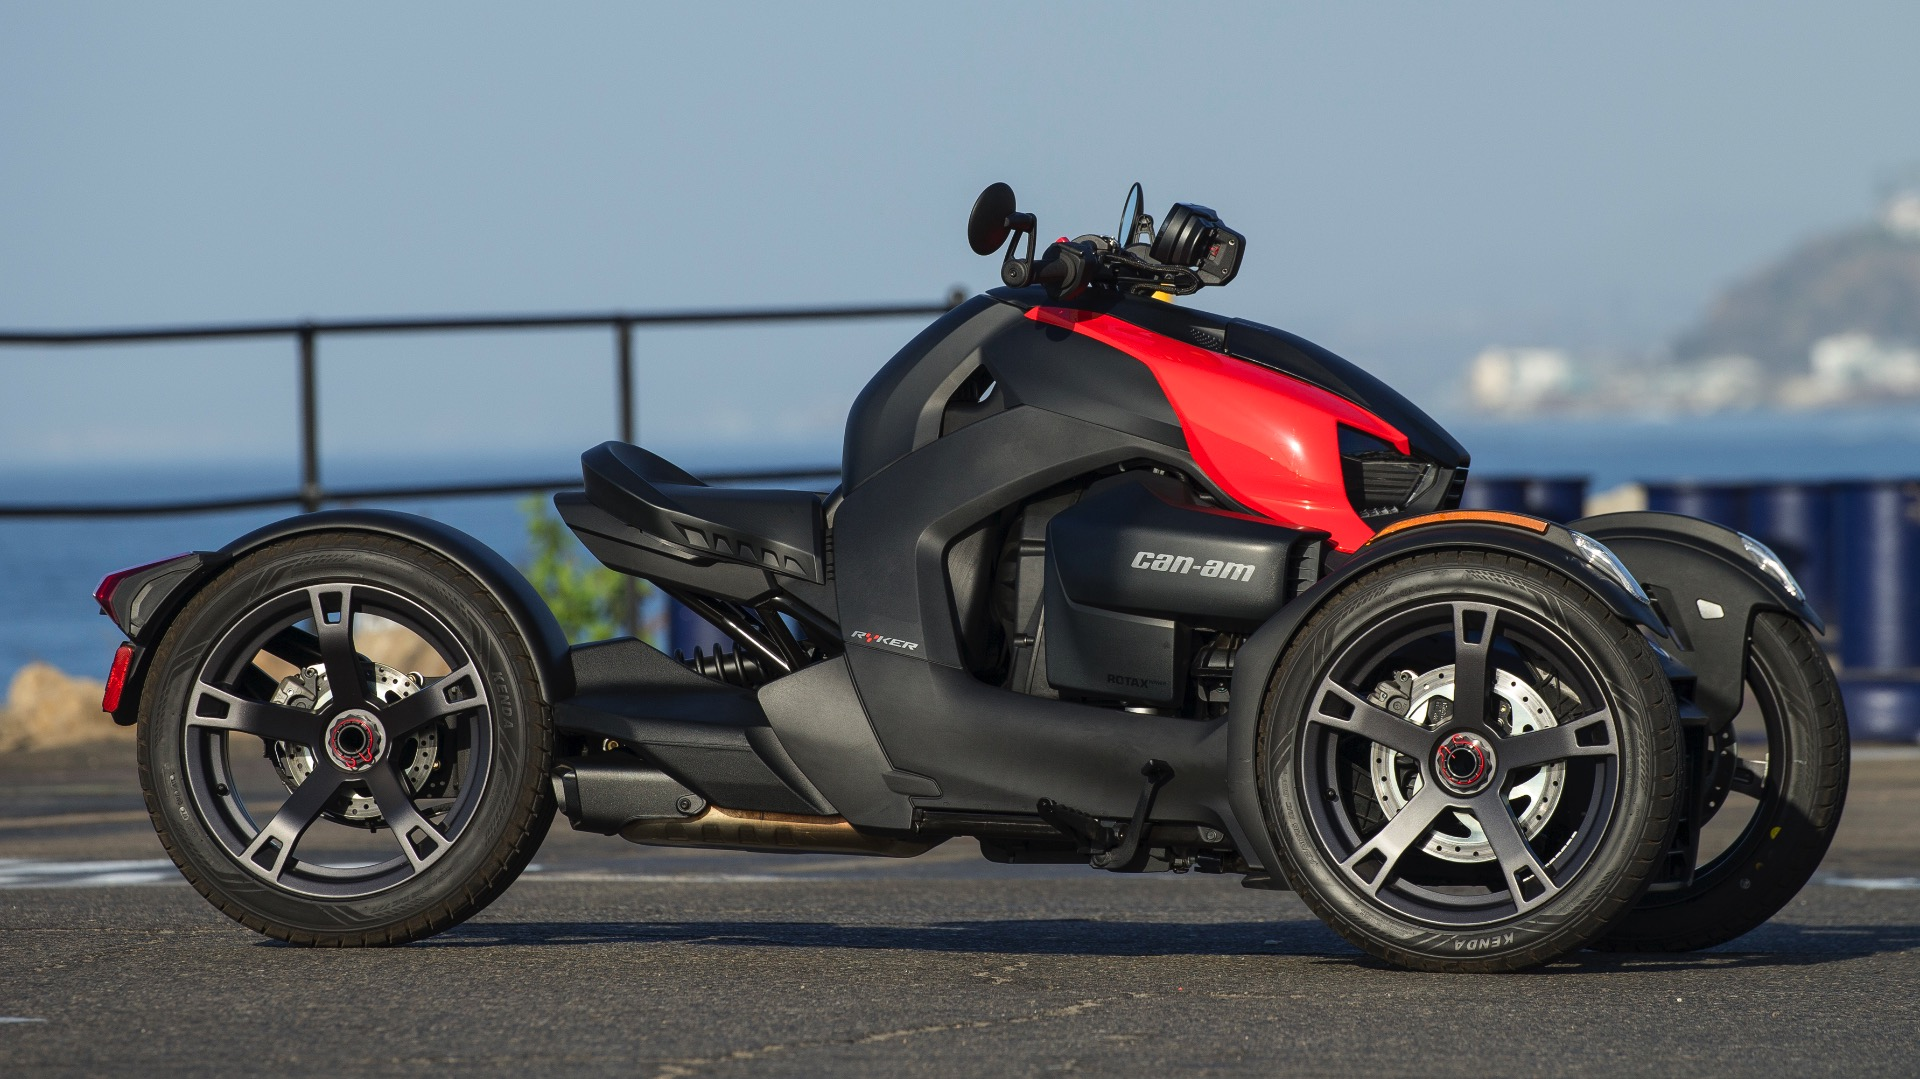 2019-Can-Am-Ryker-Review-three-wheel-motorcycle-trike-6